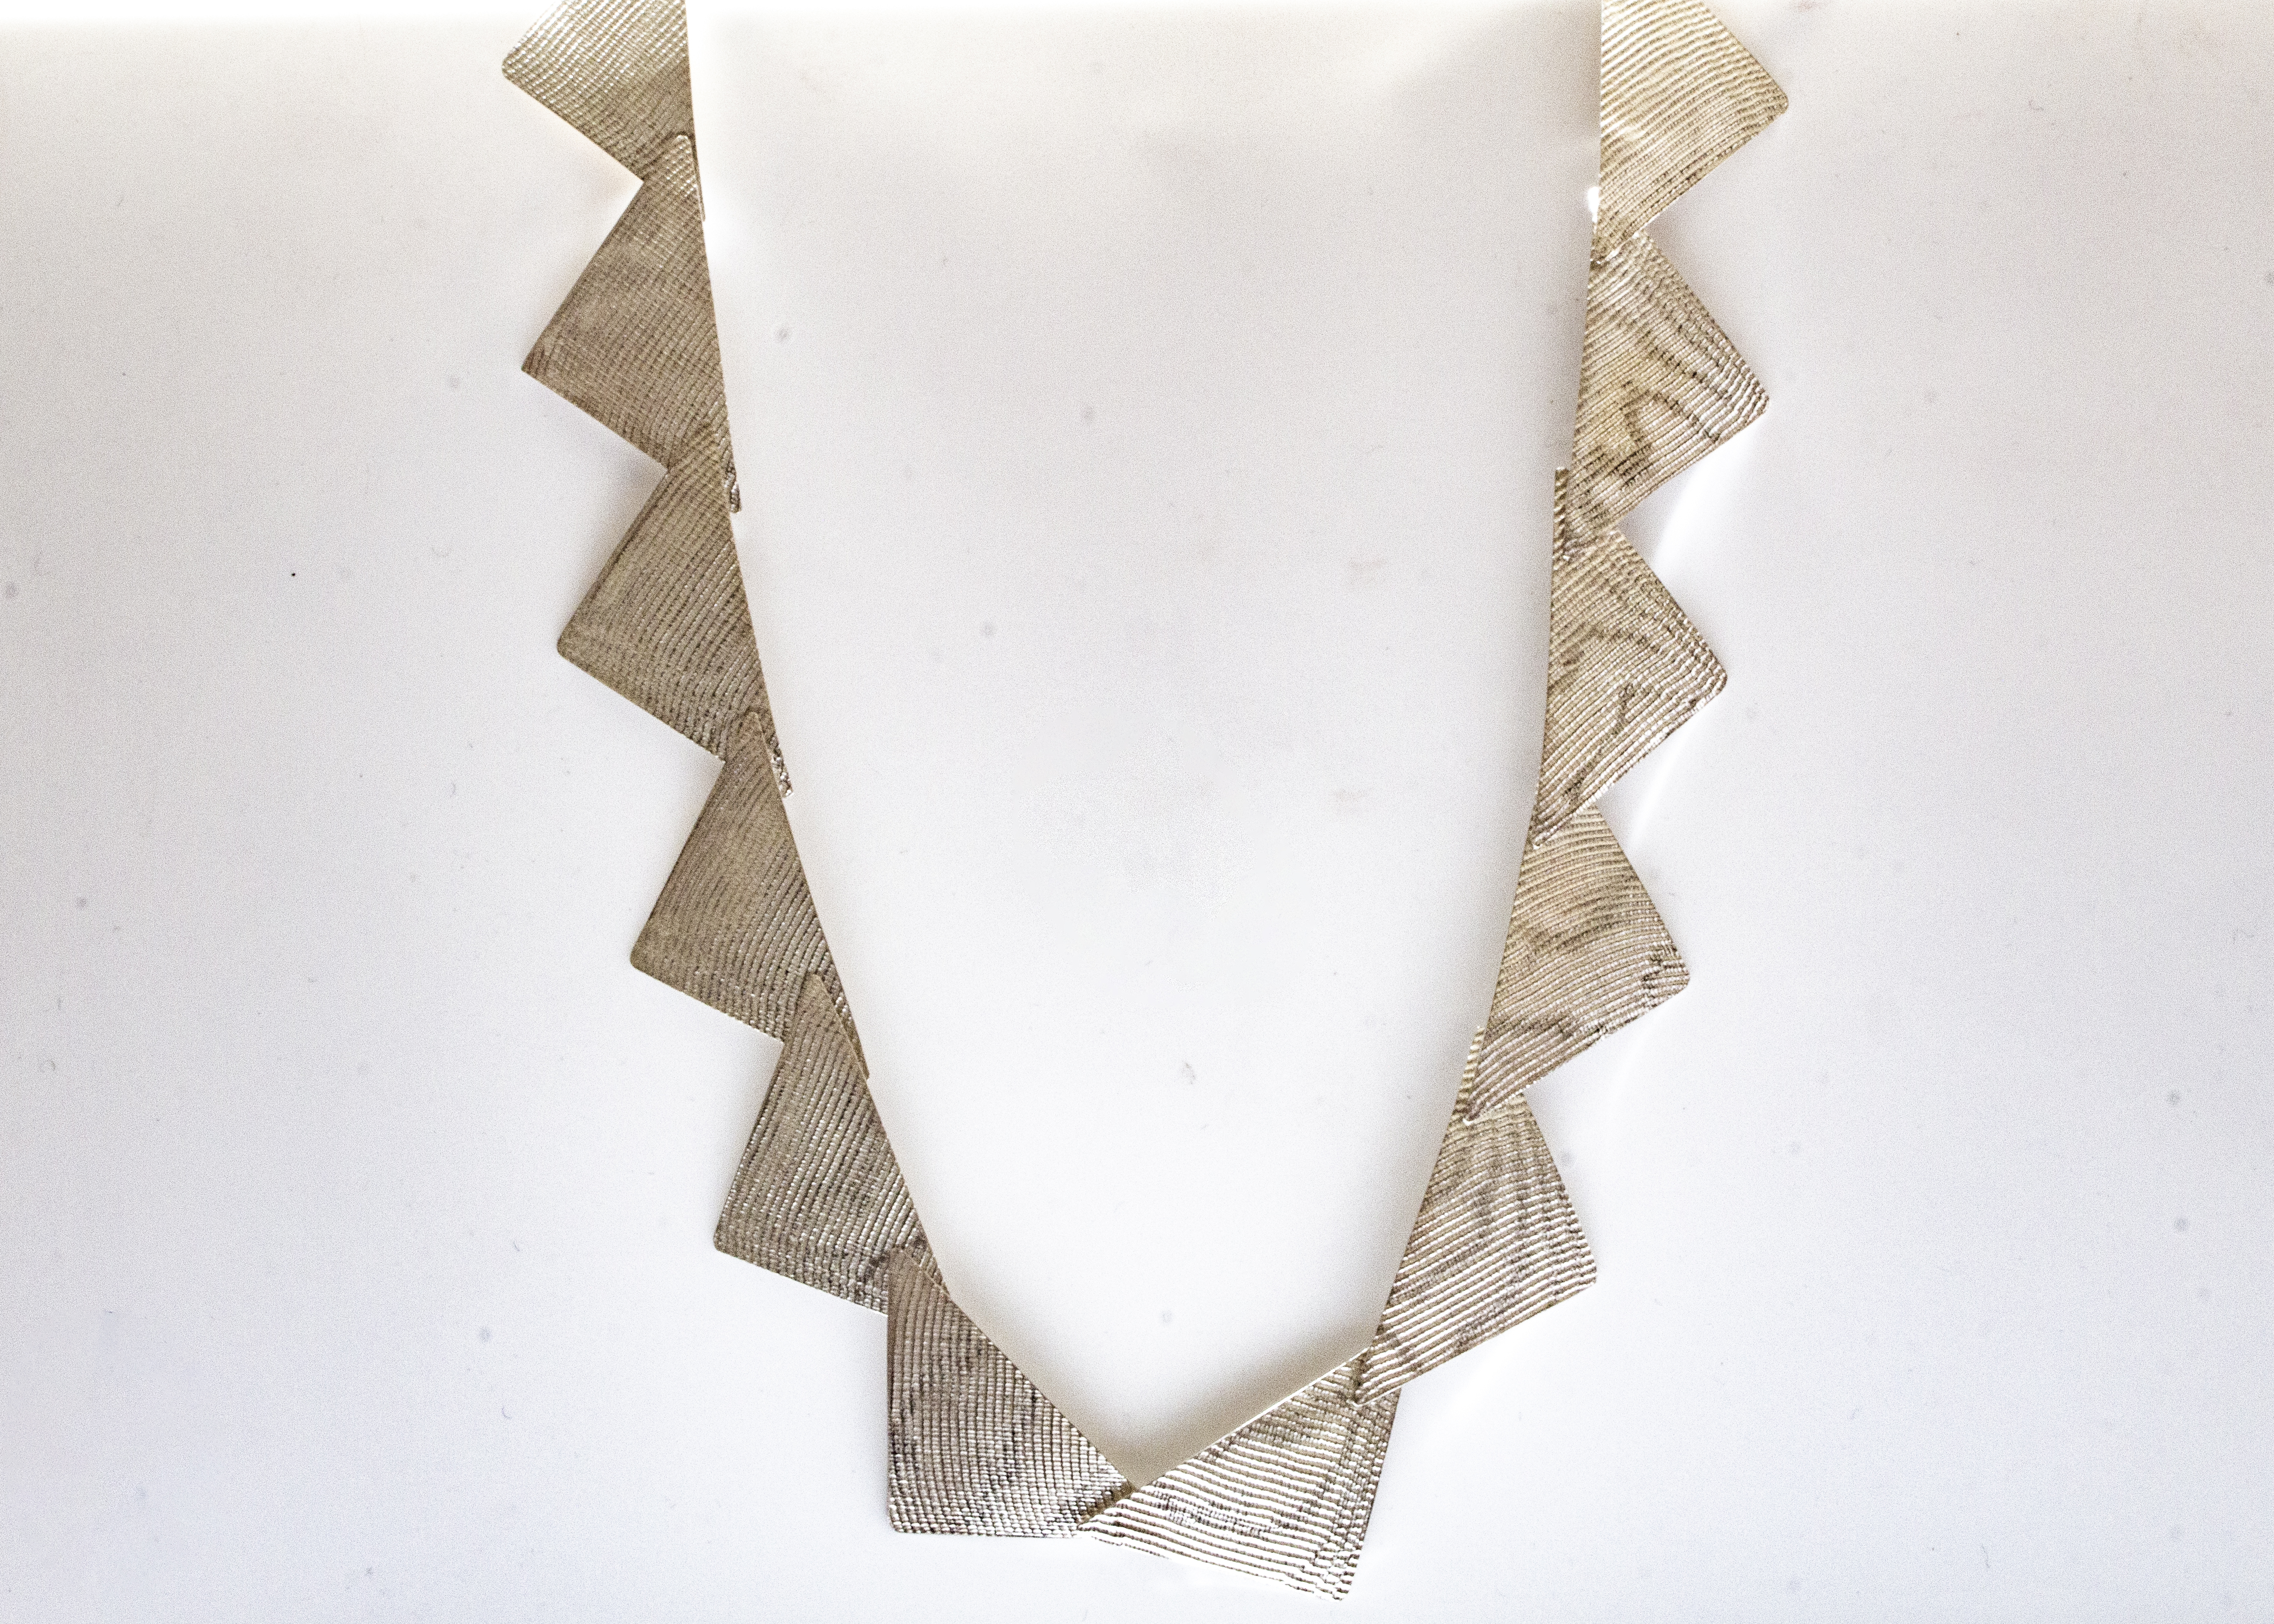 necklace-triangular-30x30-moire-hanging